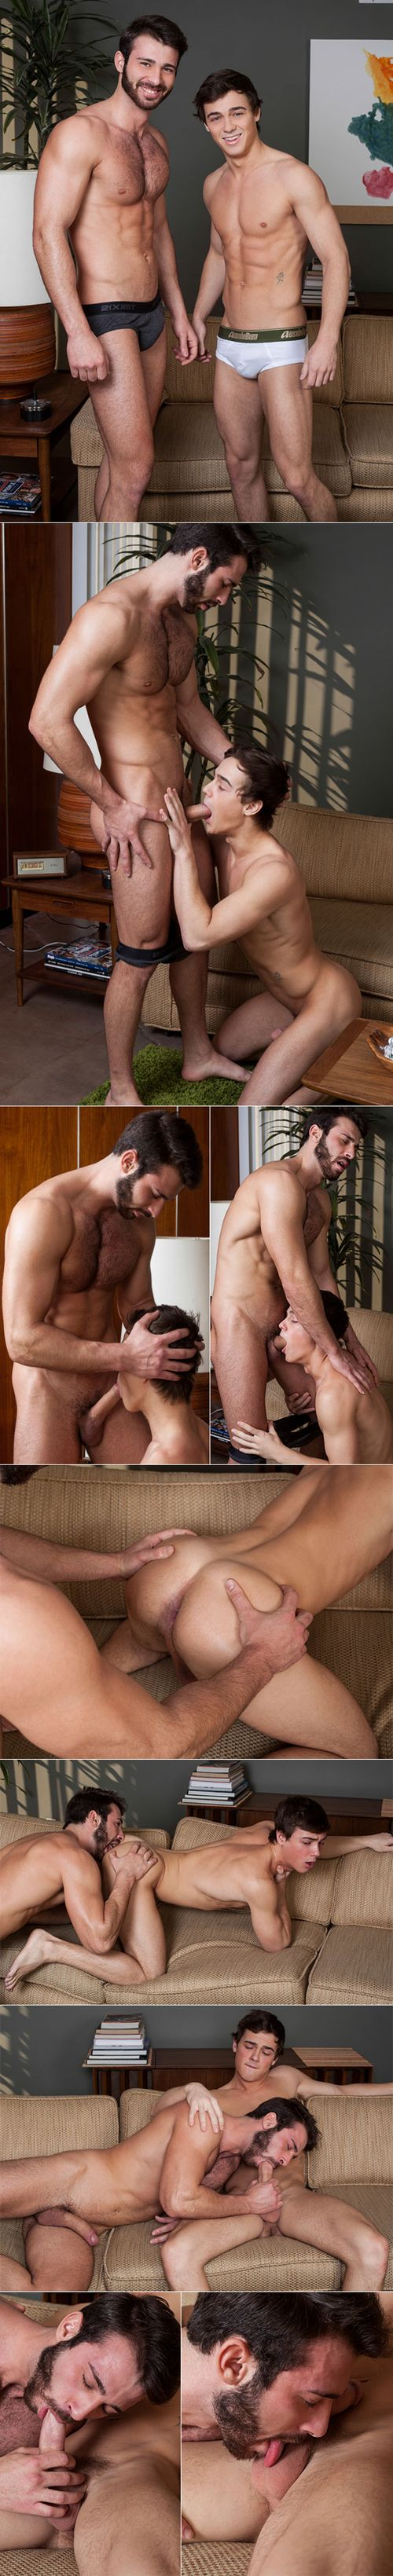 Justin-Owen-Jarec-Wentworth-RandyBlue-3